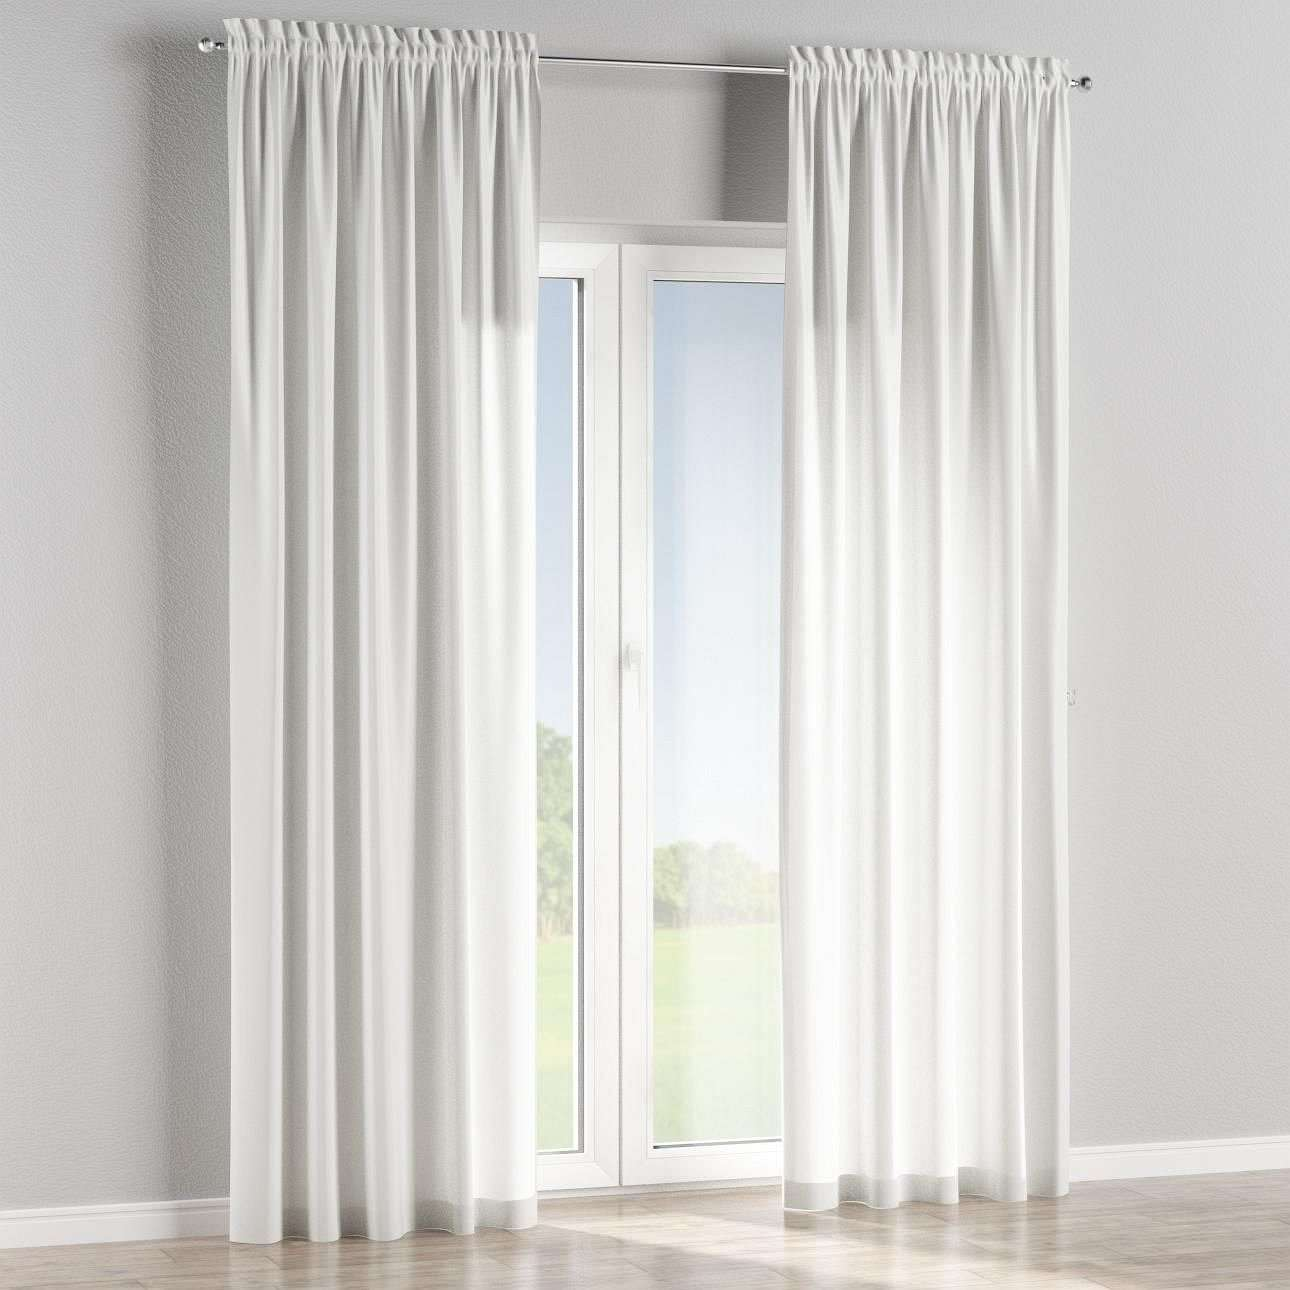 Slot and frill curtains in collection Bristol, fabric: 126-15